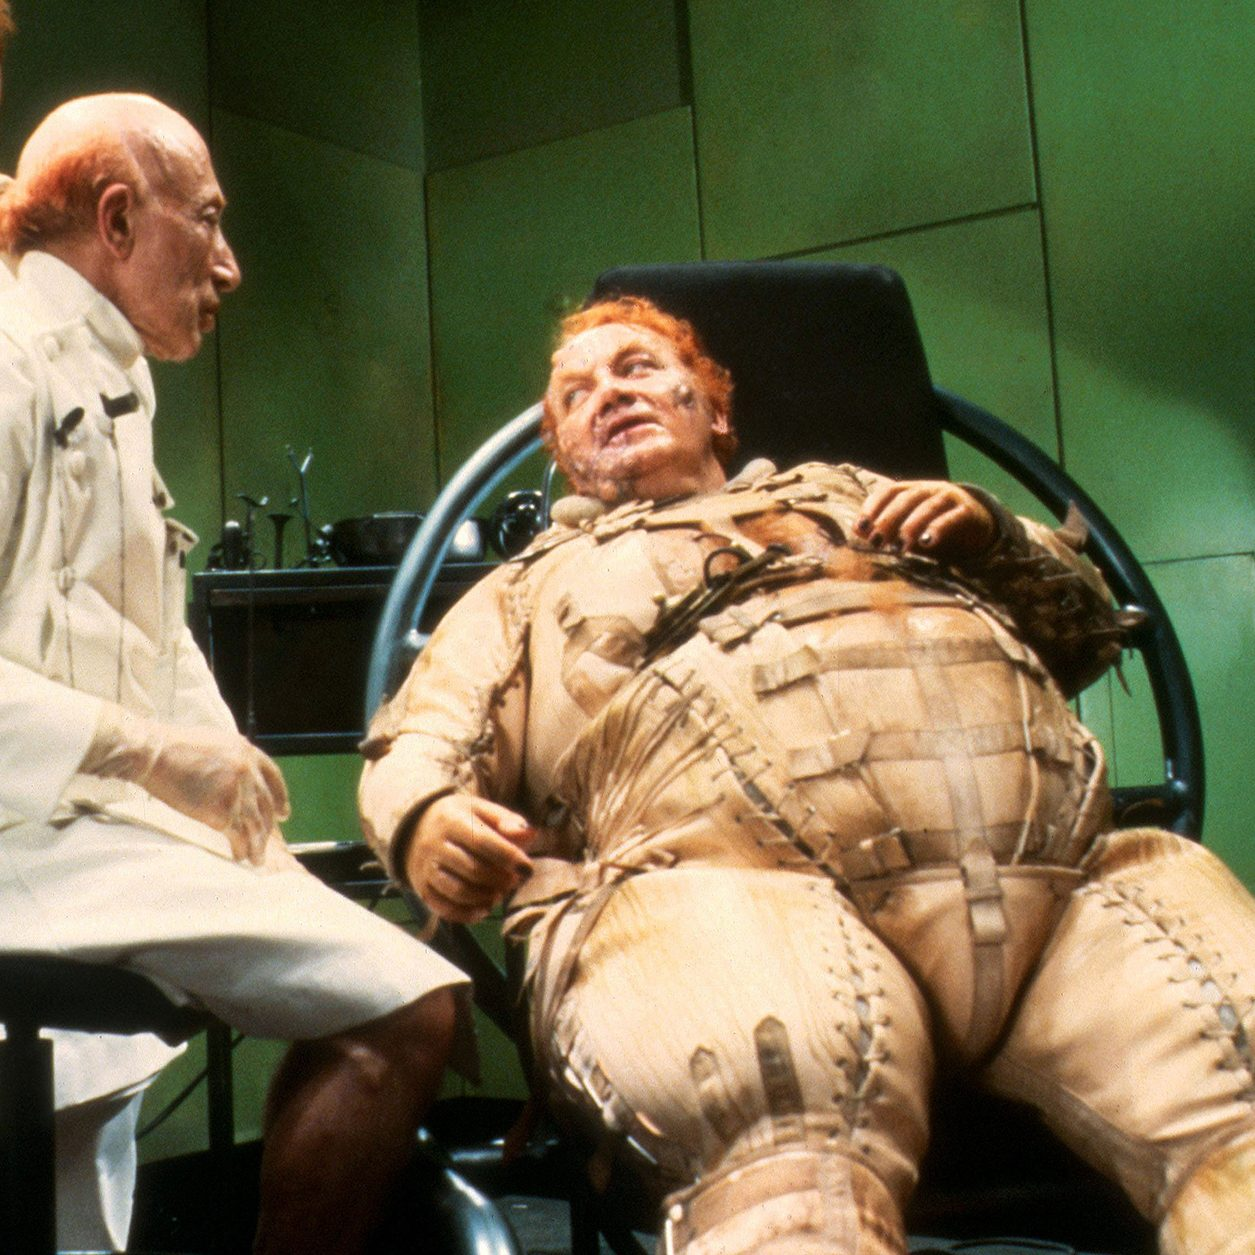 D5RFT5 e1603185599758 20 Things You Probably Didn't Know About The 1984 Sci-Fi Film Dune